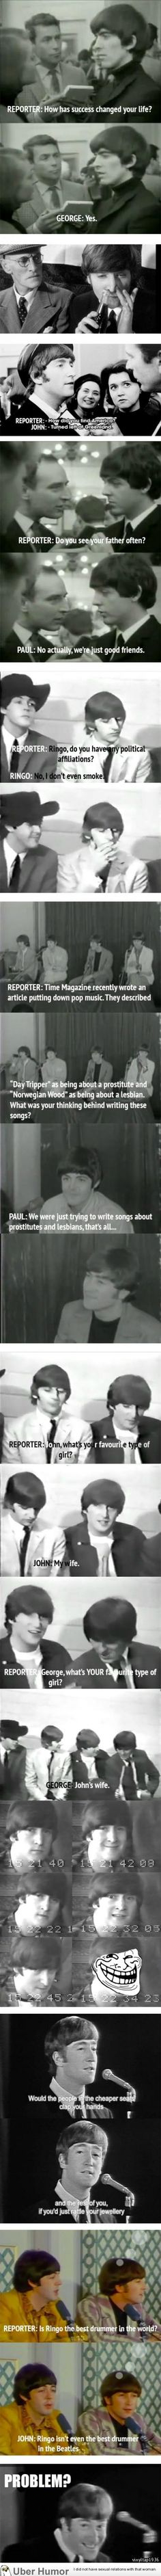 Tell me they don't remind you of our boys. 1D are The Beatles reincarnated.